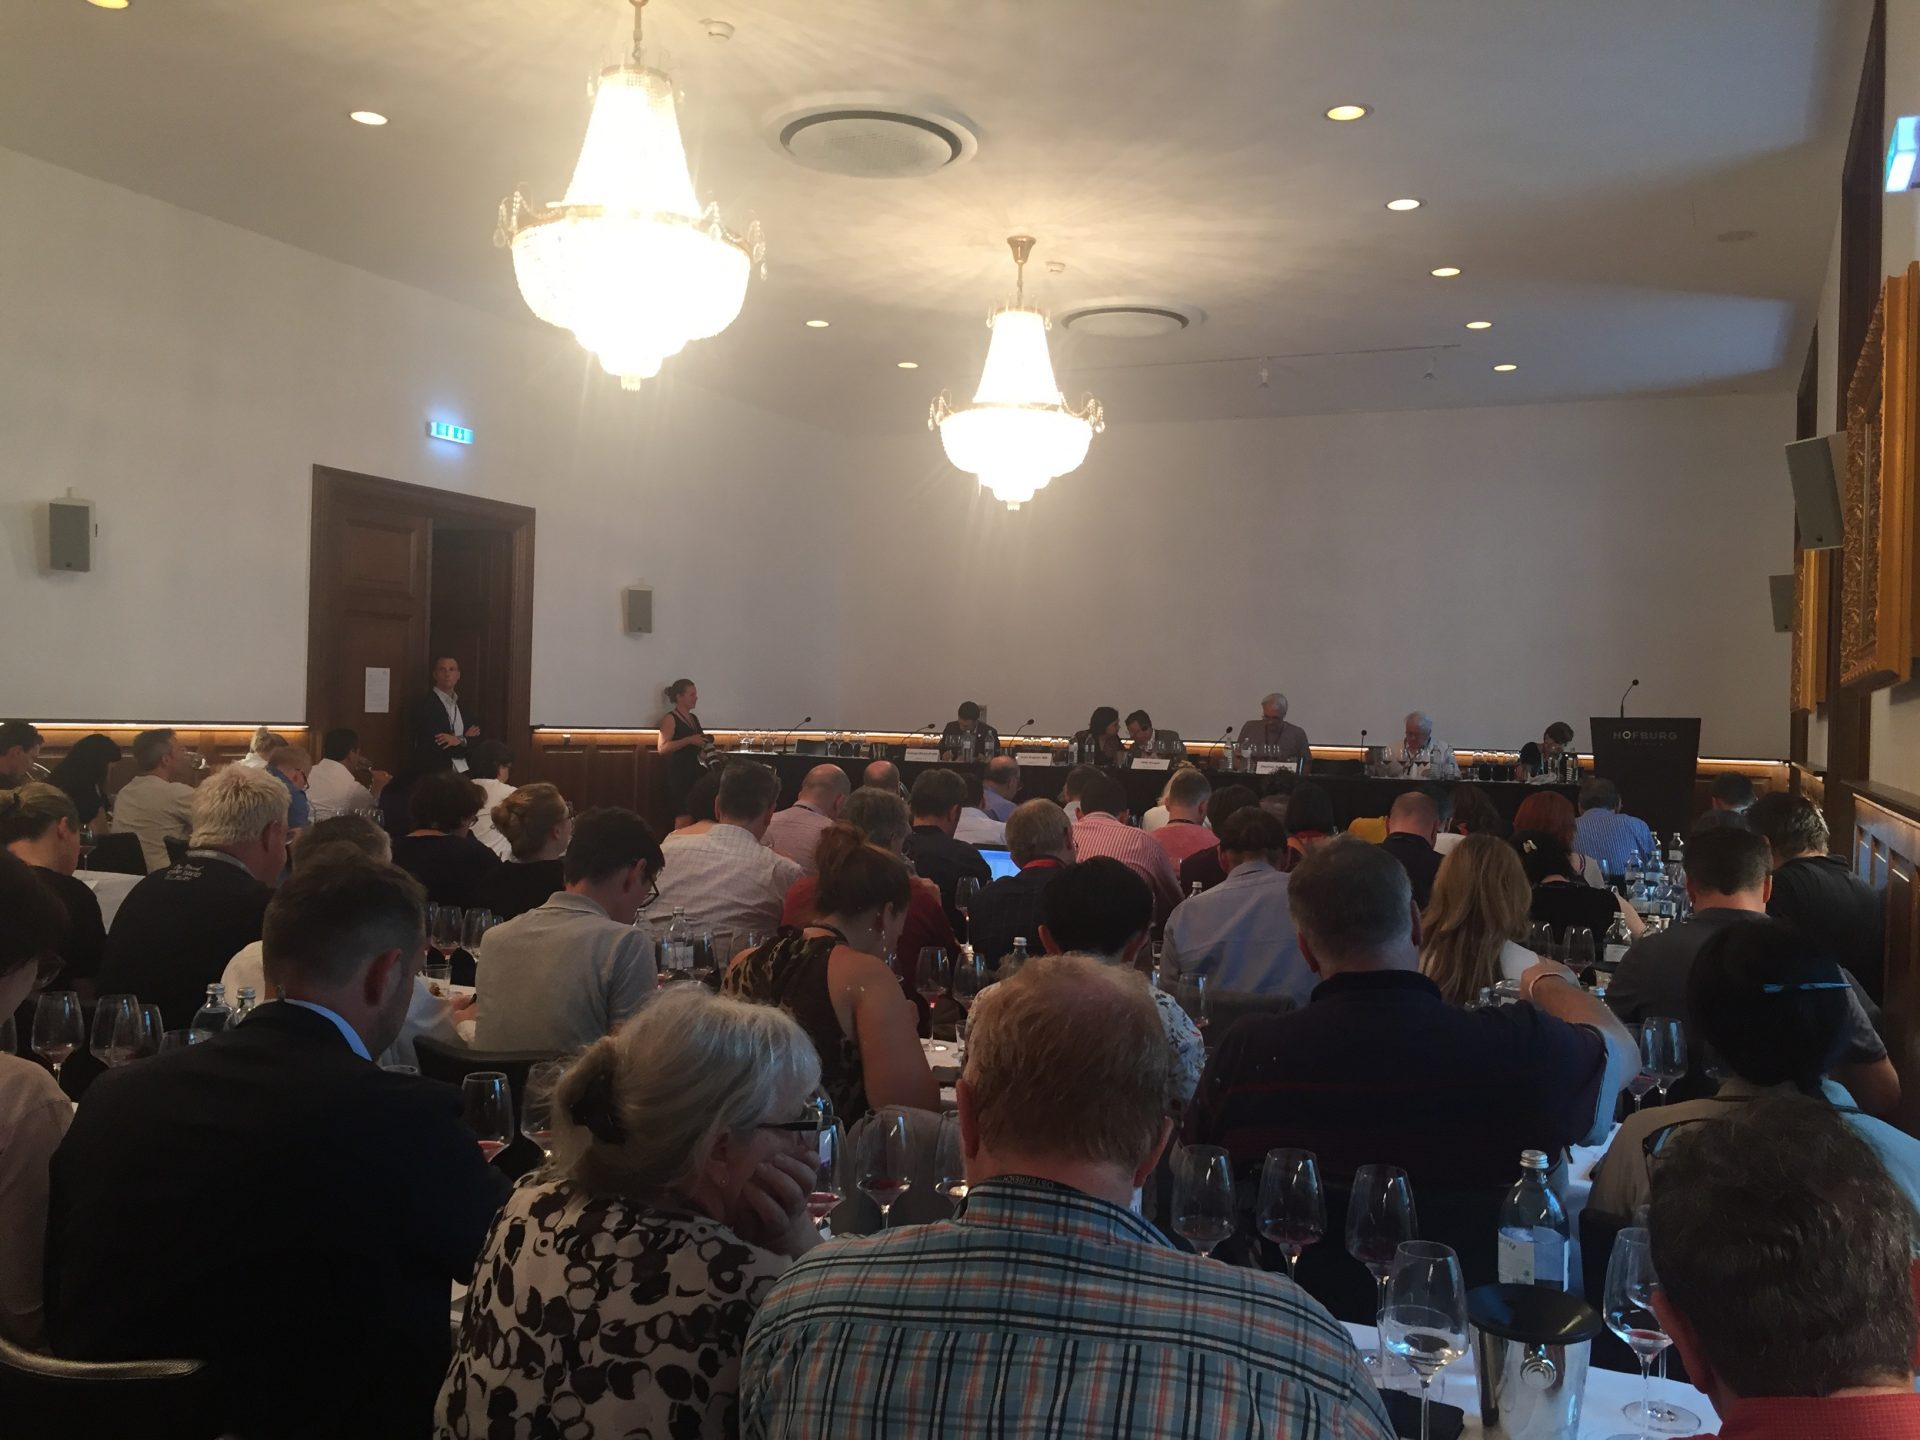 VieVinum 2018 - IMW Tasting - Best Old World Pinot Noir, outside of Burgundy, 9. 6. 2018, Schatzkammersaal, Hofburg, Vienna.